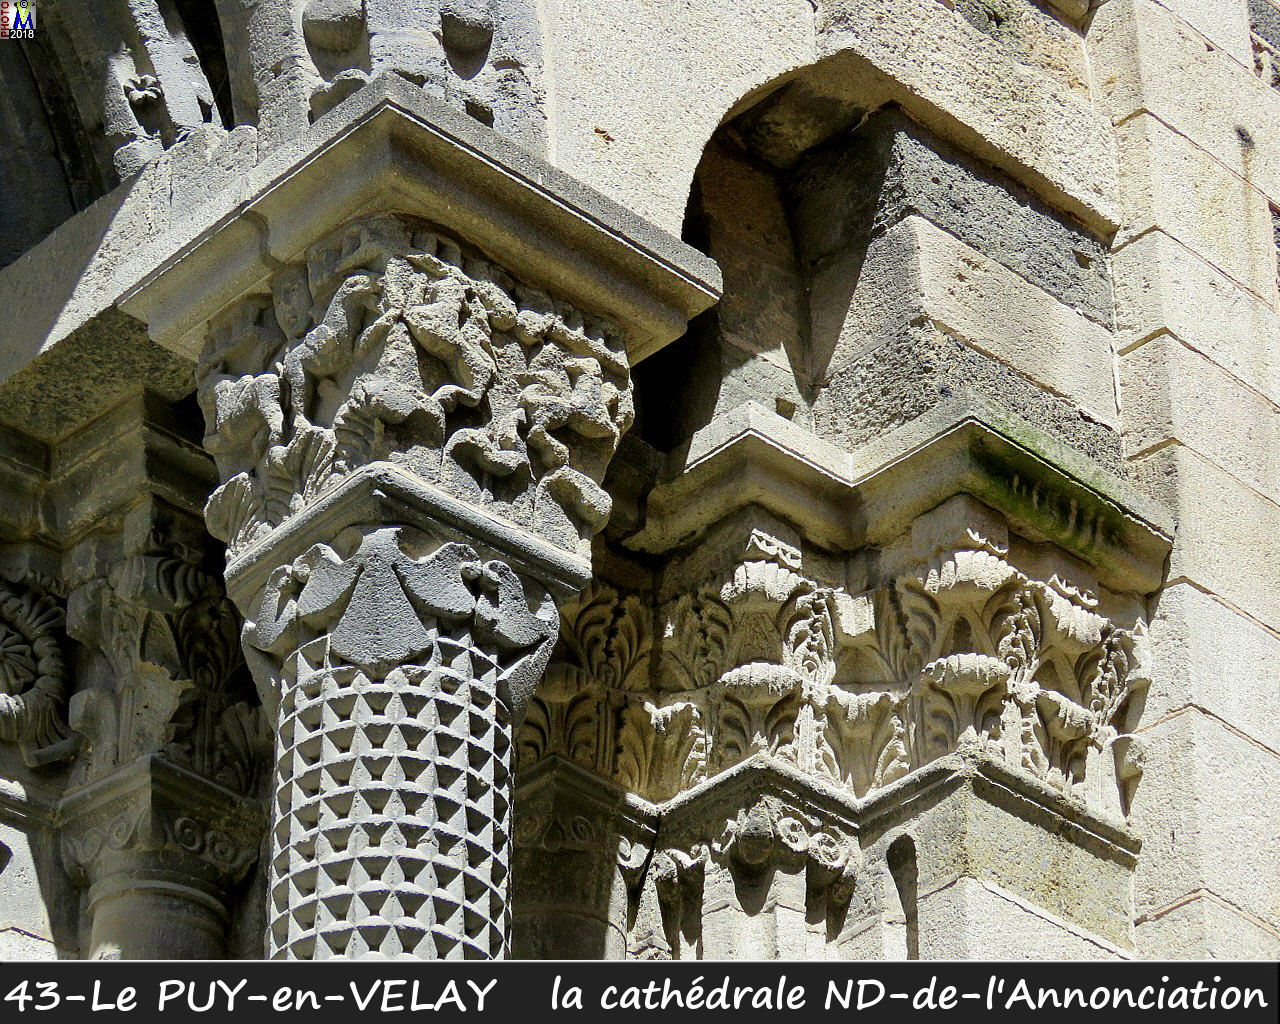 43PUY-EN-VELAY_cathedrale_146.jpg